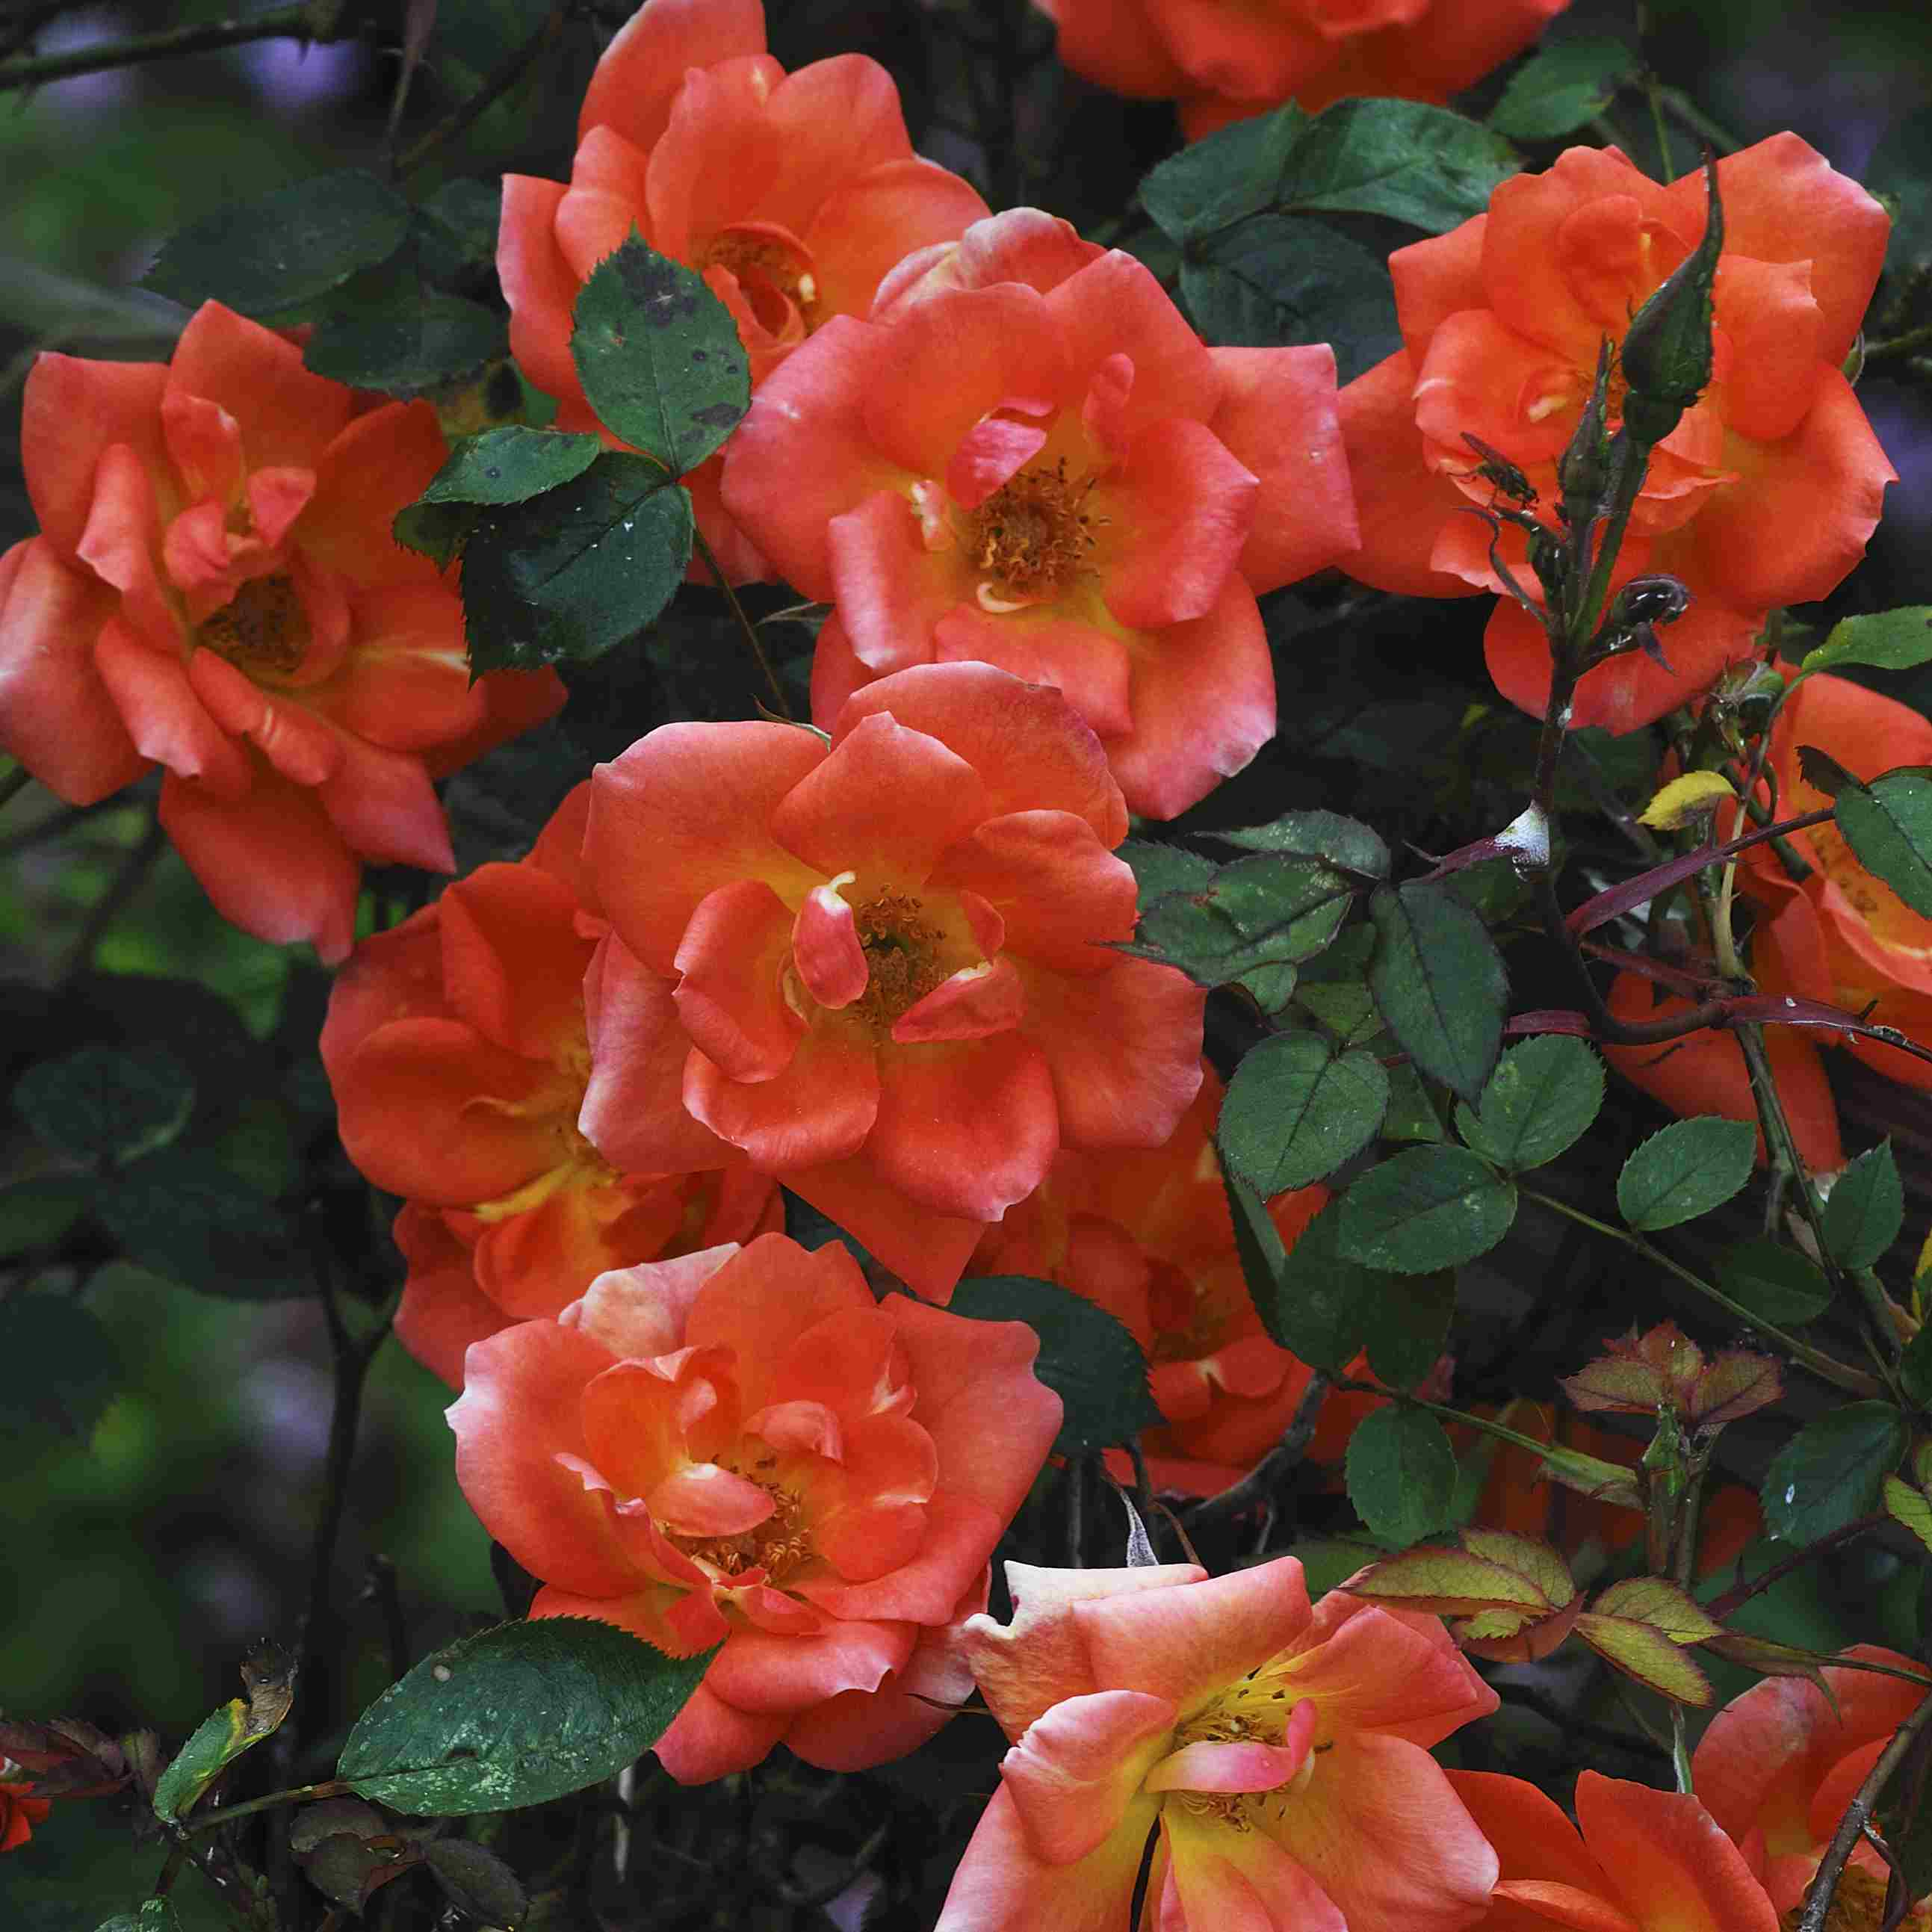 Warm Welcome rose with orange-red blooms